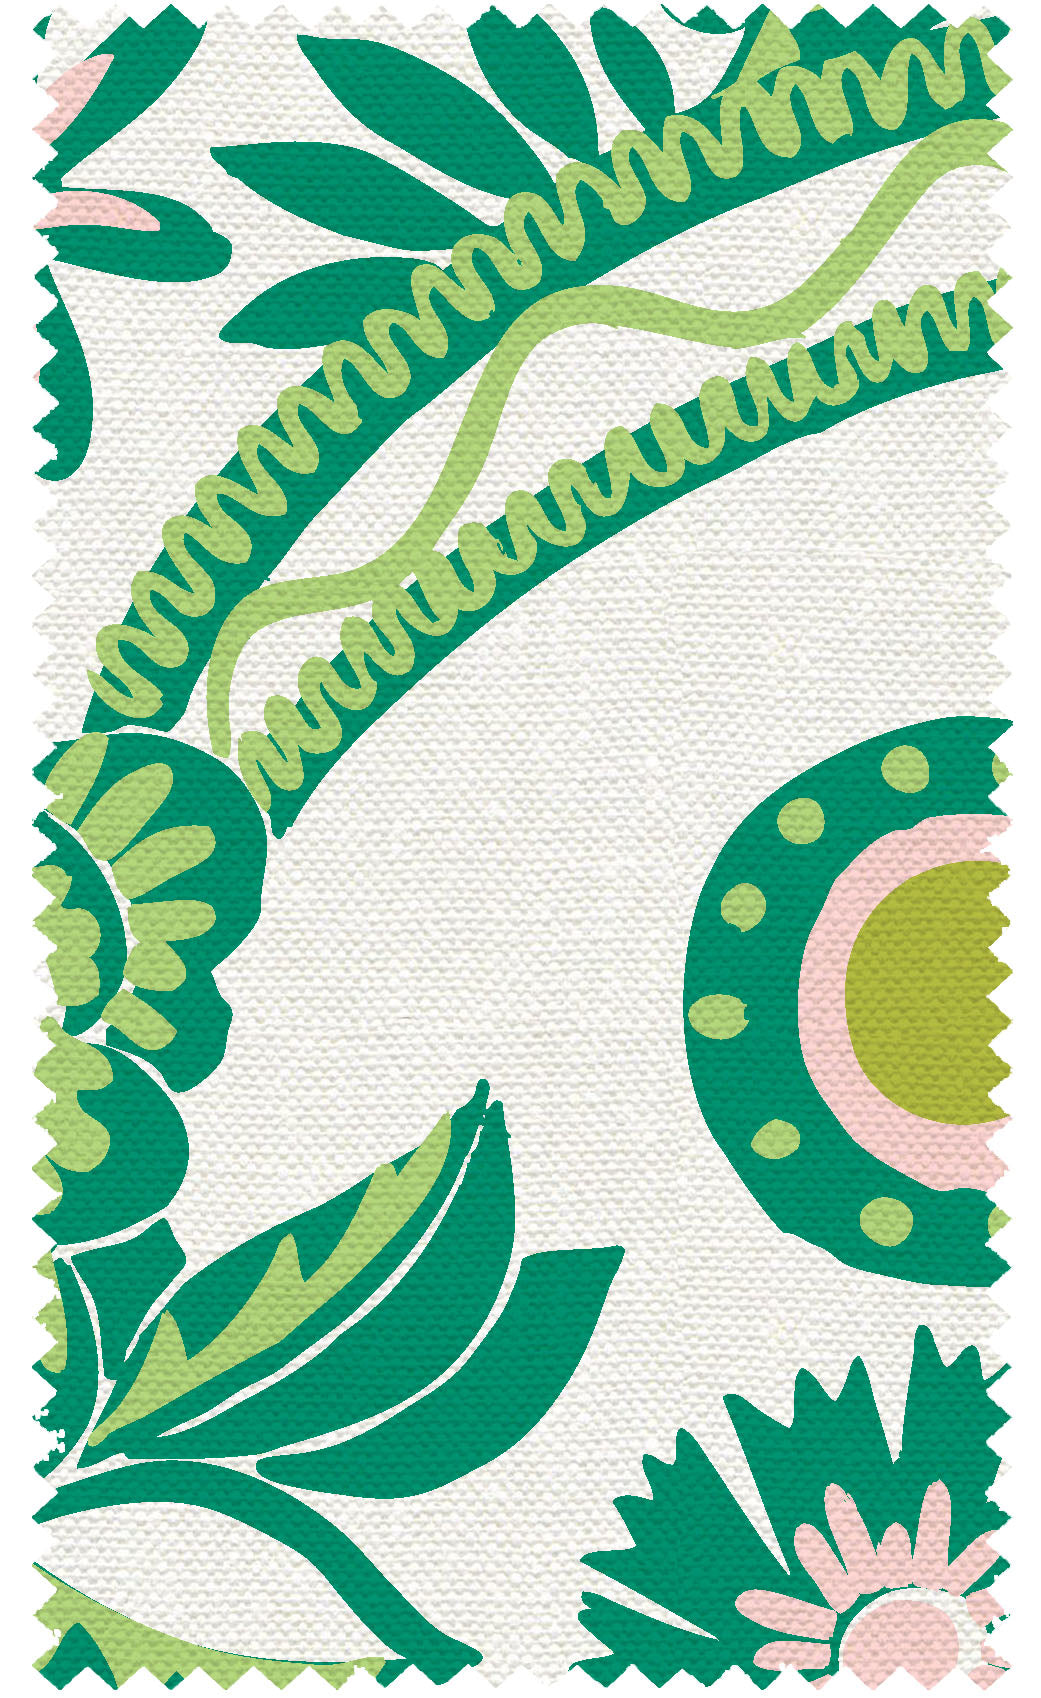 10 Holland Street Lawn Green Textile print for Upholstery and Curtains. Floral Damask Style design Vase Series